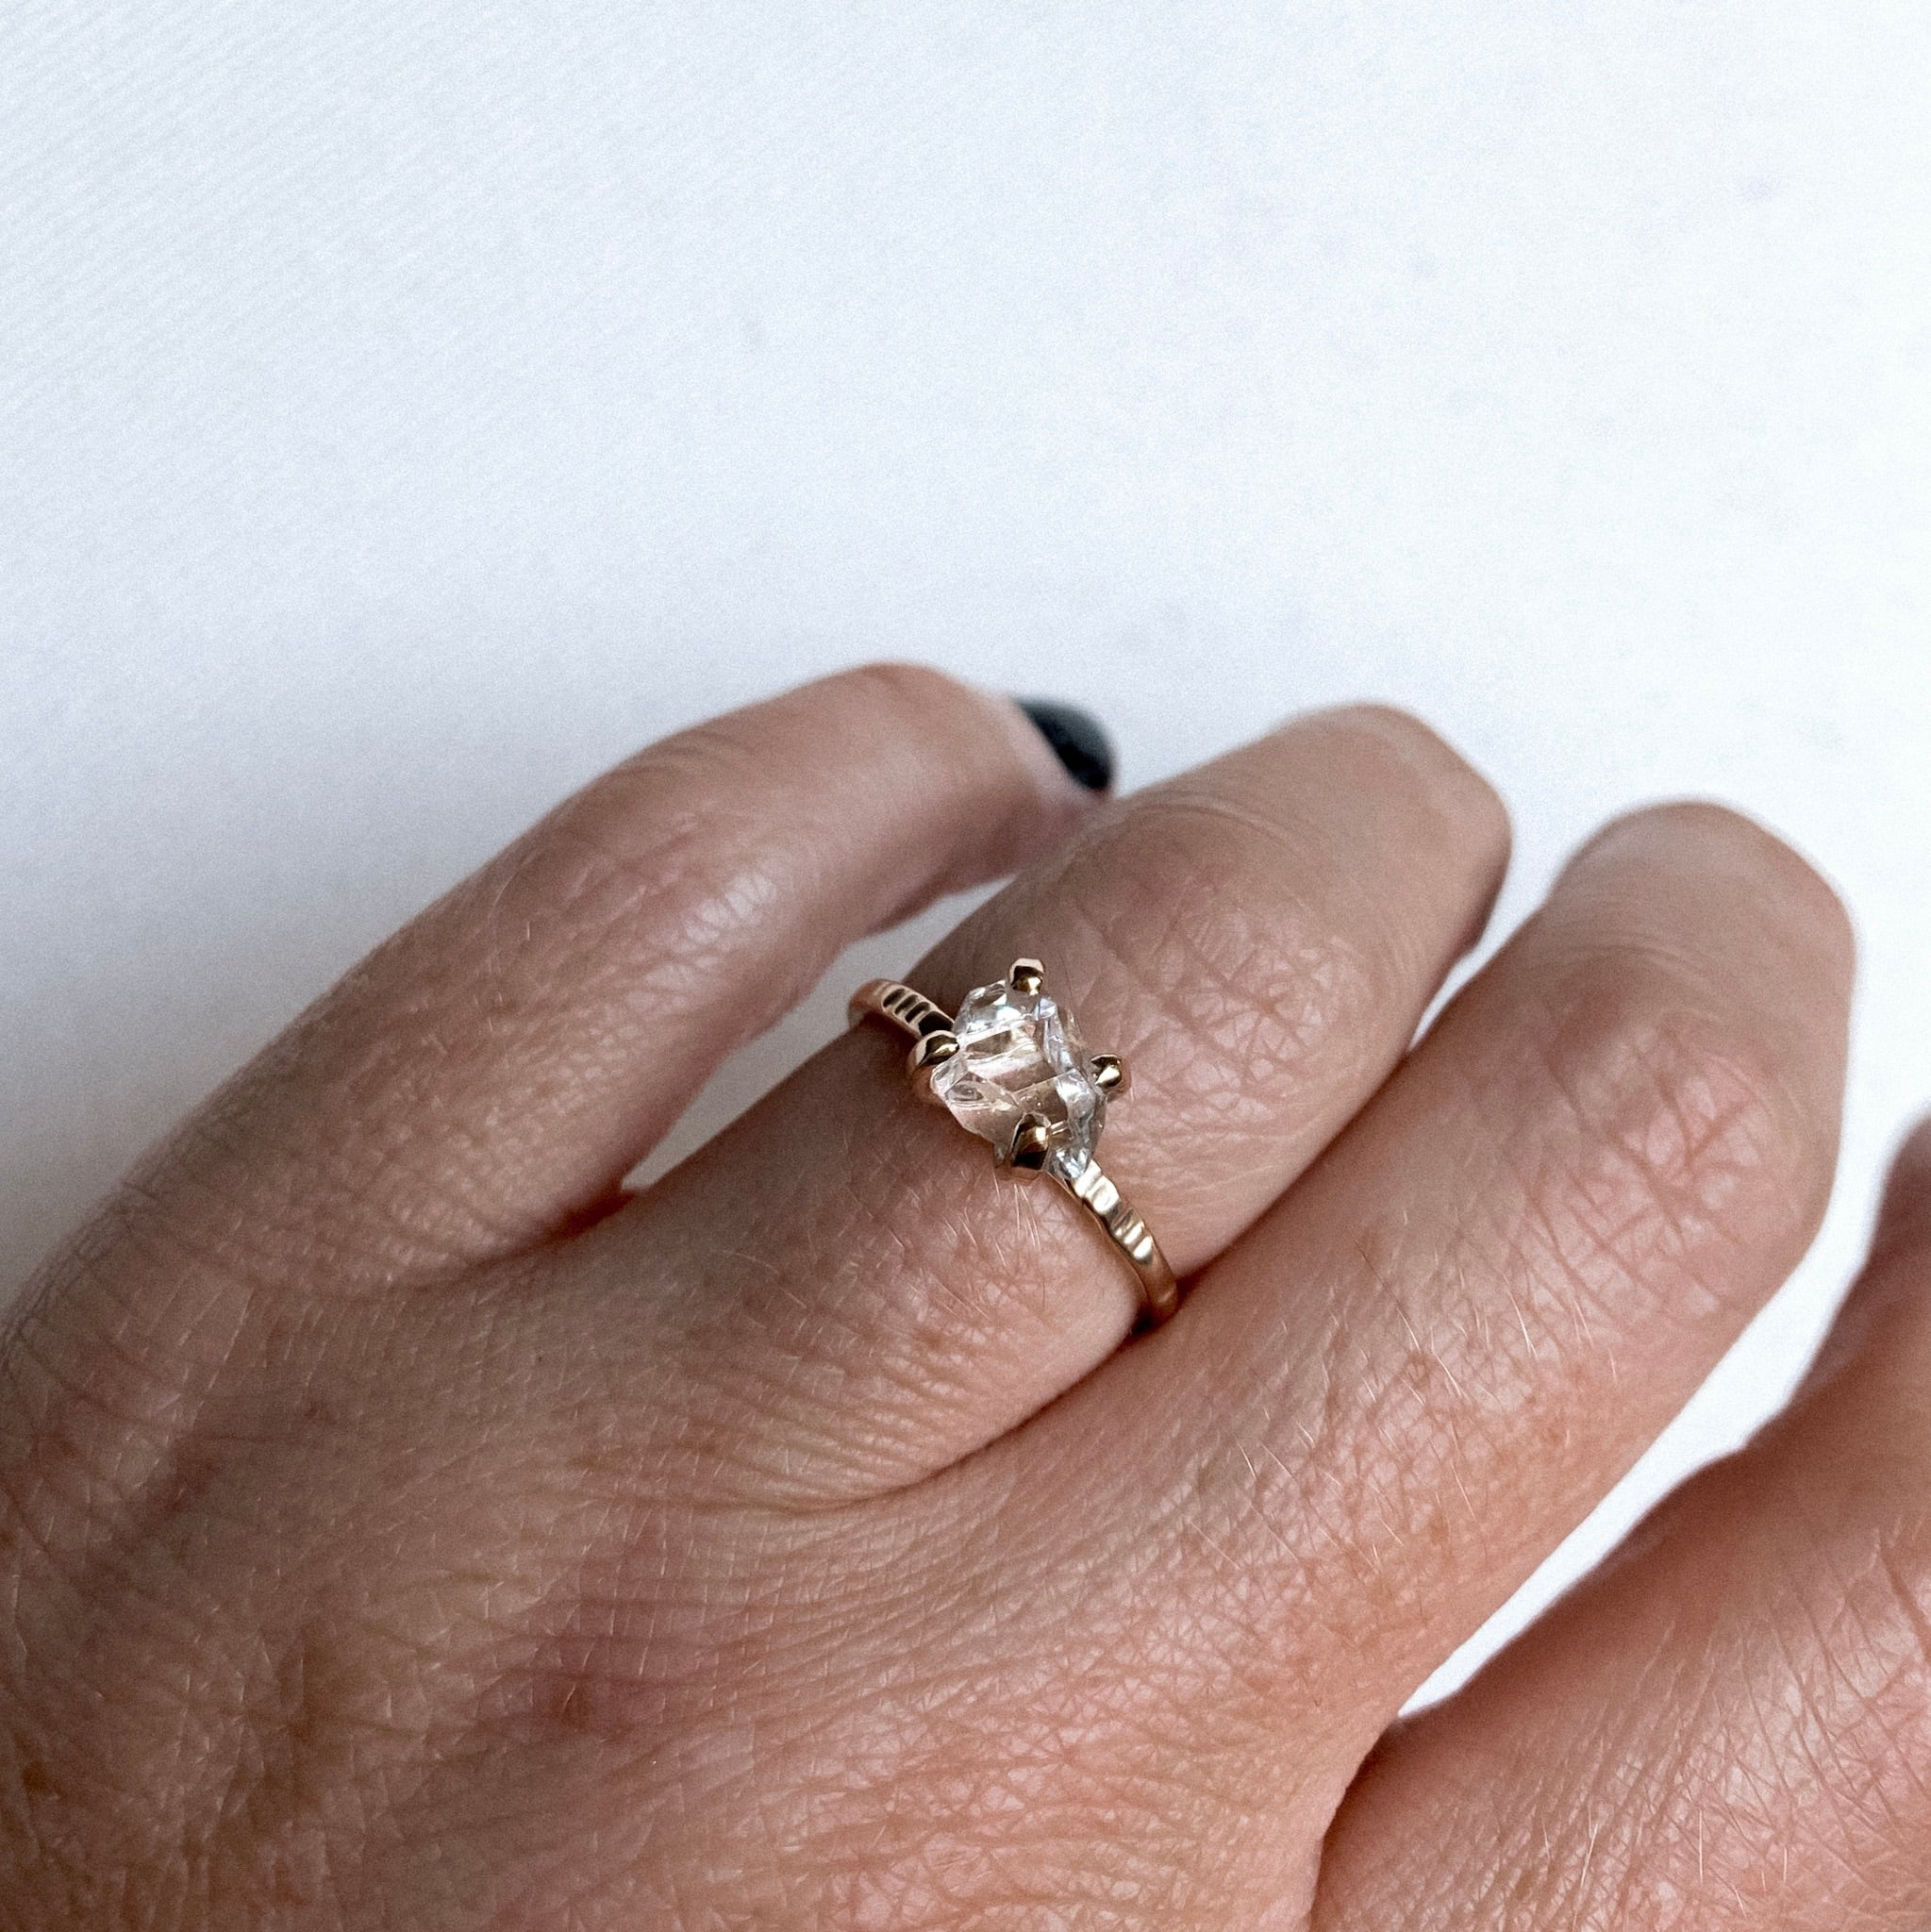 a close up of a finger wearing a gold claw style ring with a herkimer diamond